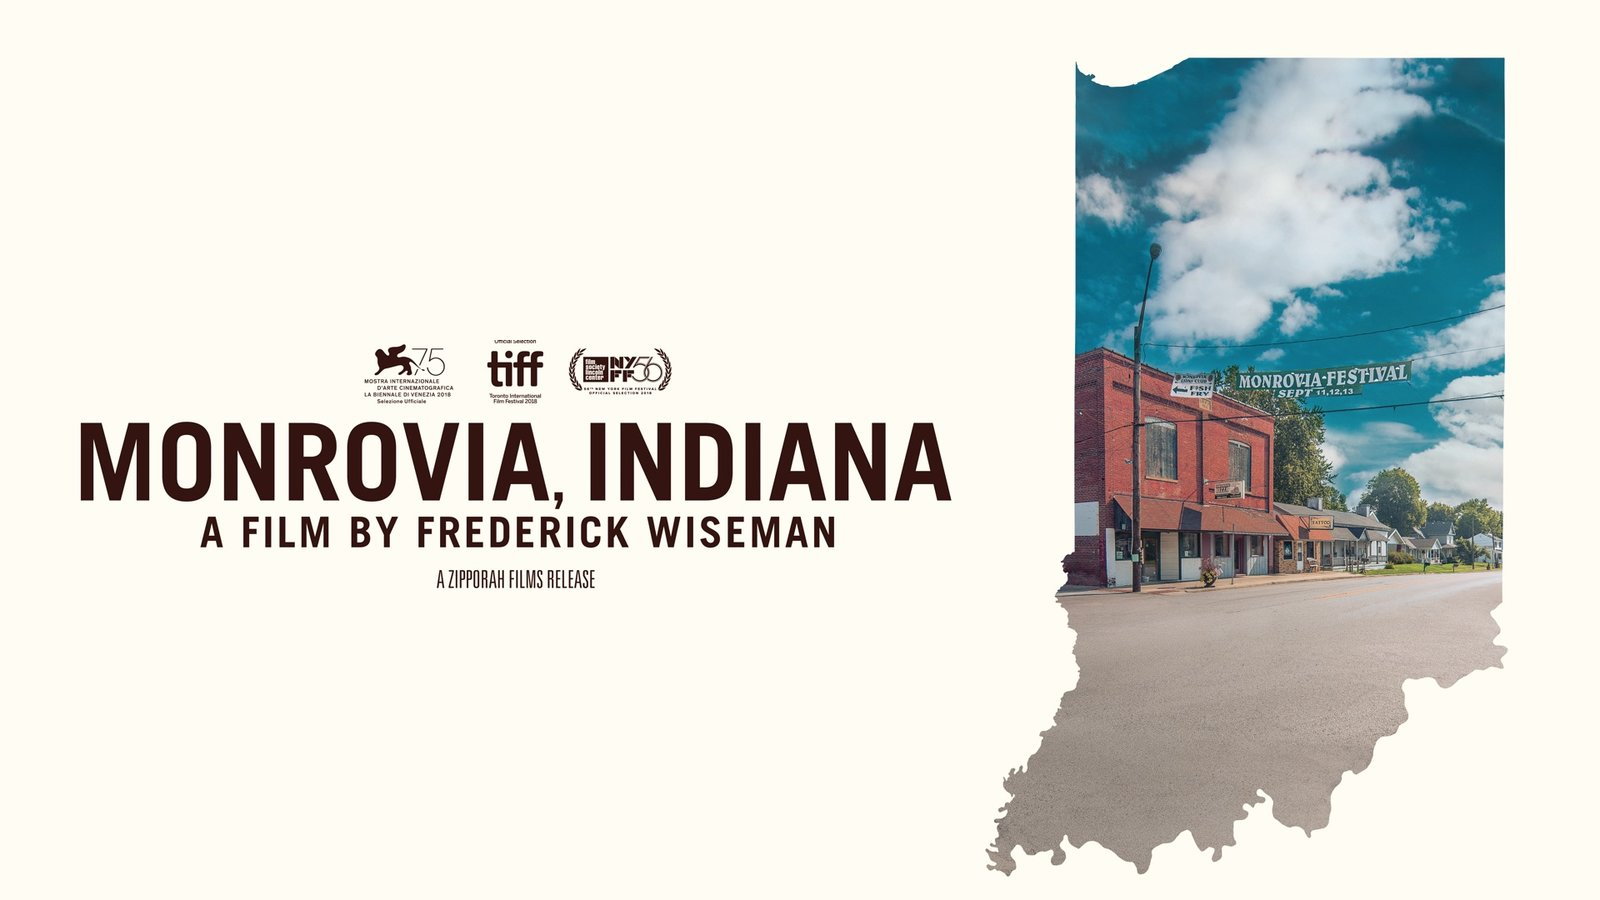 Monrovia, Indiana - A Portrait of Life in Rural America